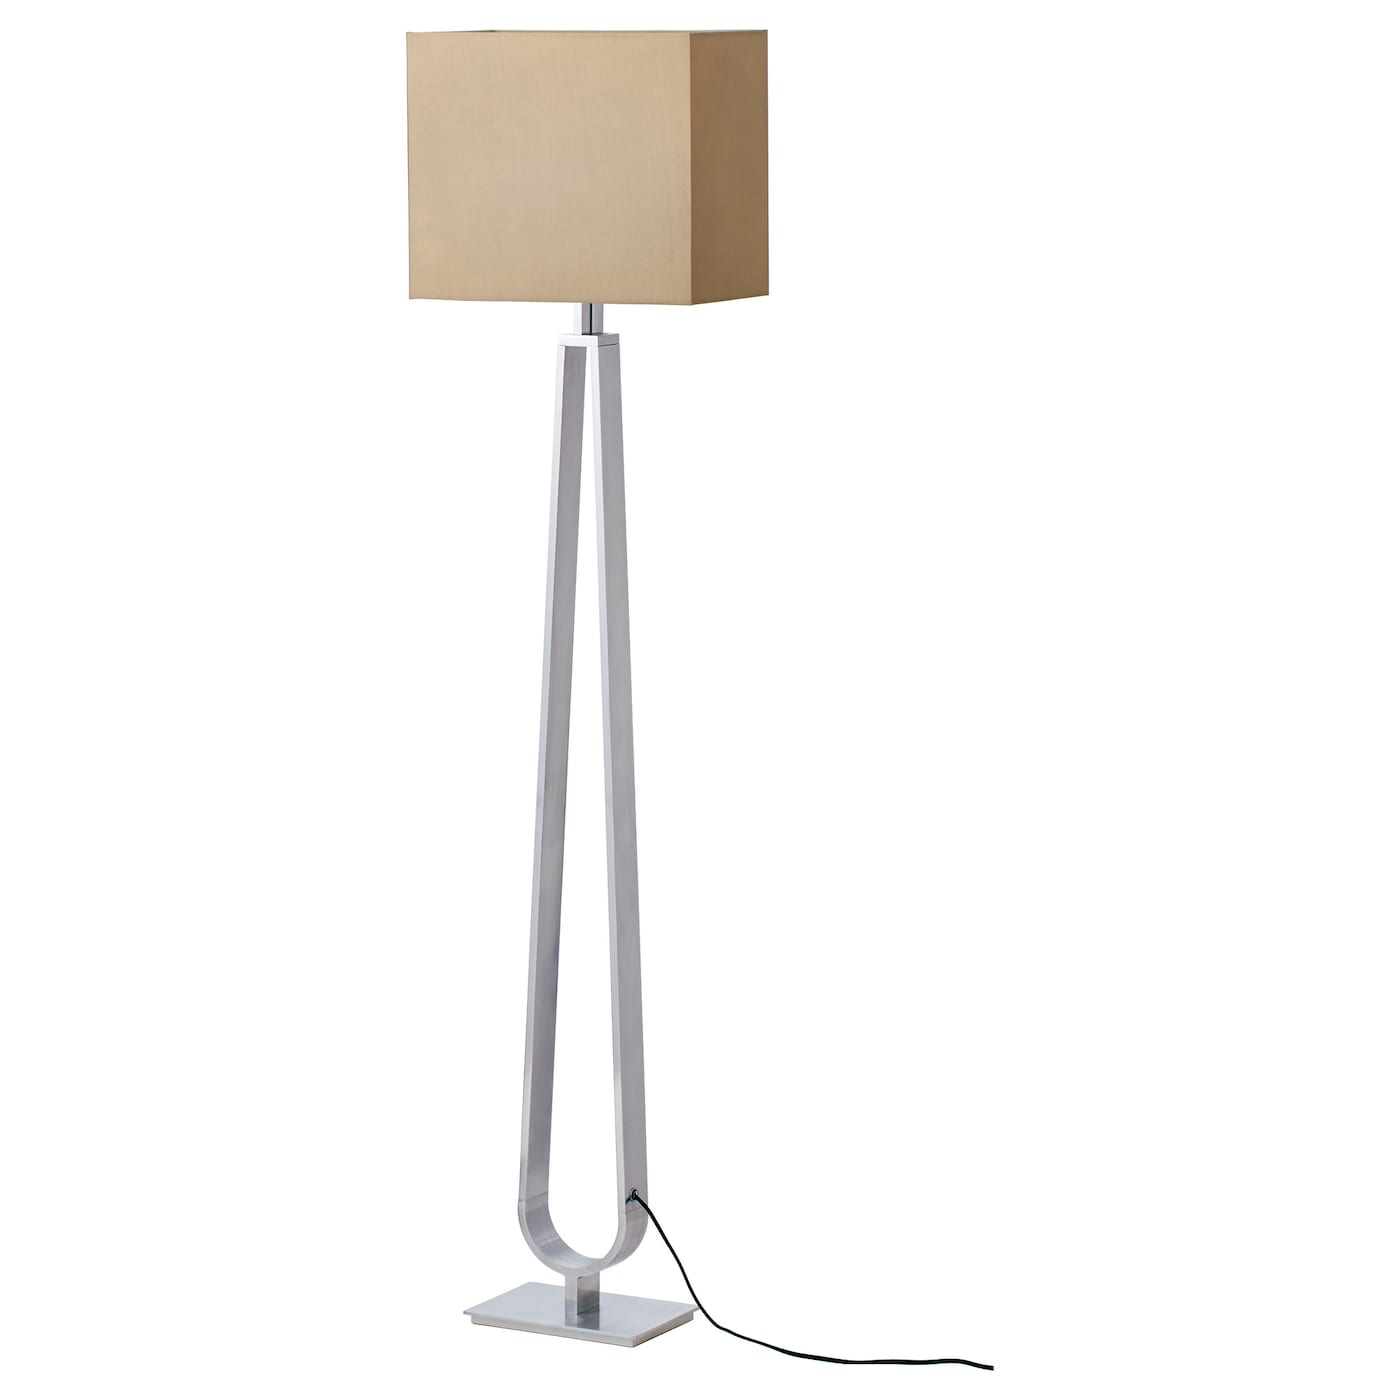 Klabb floor lamp light brown ikea ikea klabb floor lamp helps lower your electric bill because dimming the lights saves energy aloadofball Choice Image